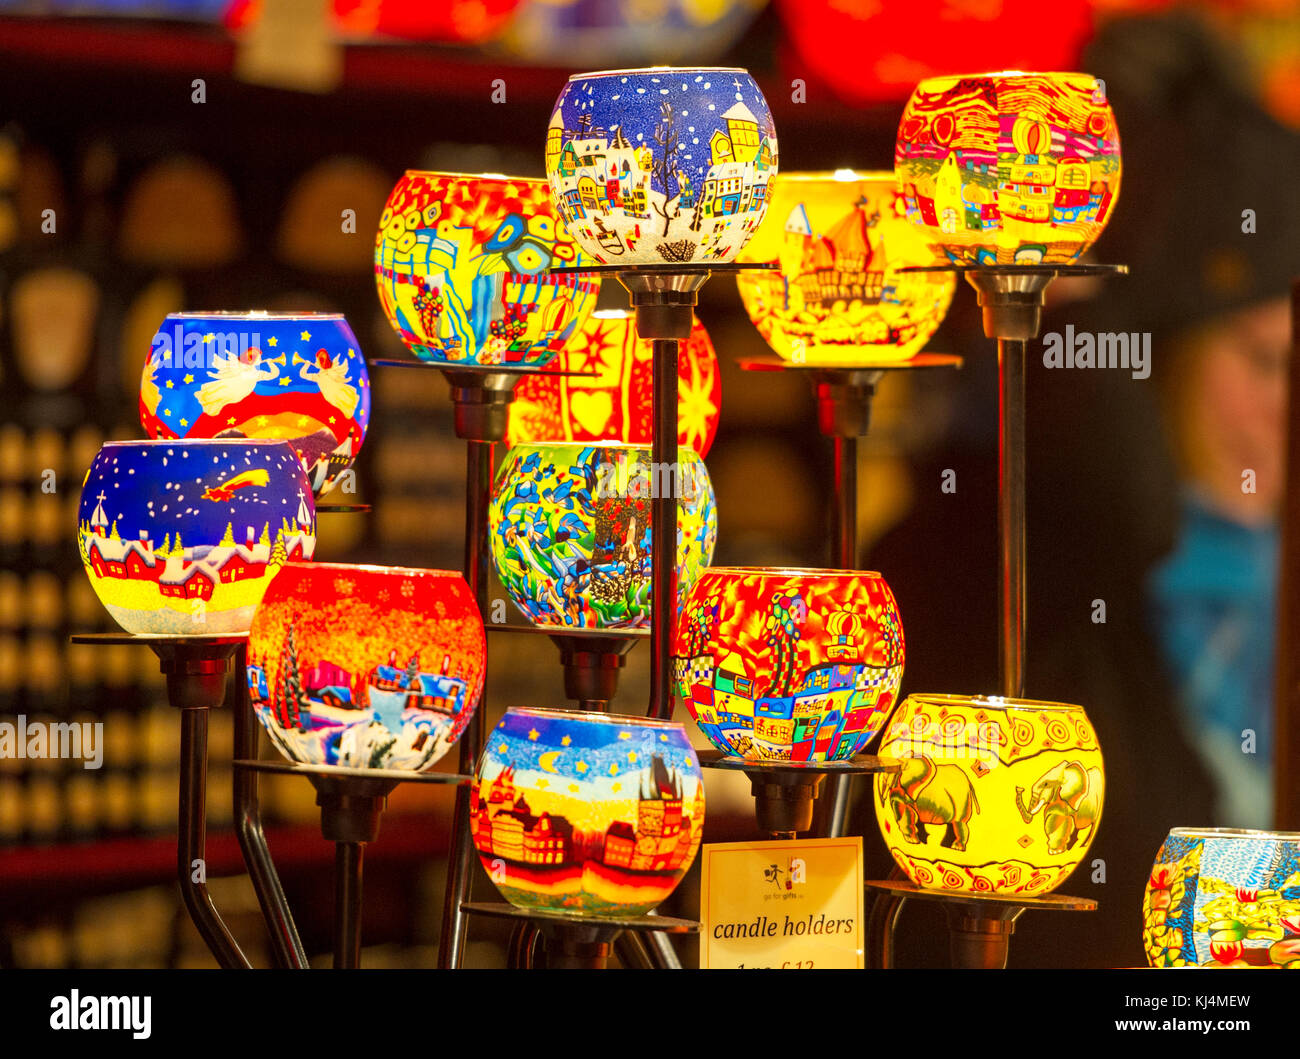 A display of coloured glass candle holders on display at a stall in the Edinburgh Christmas market. - Stock Image